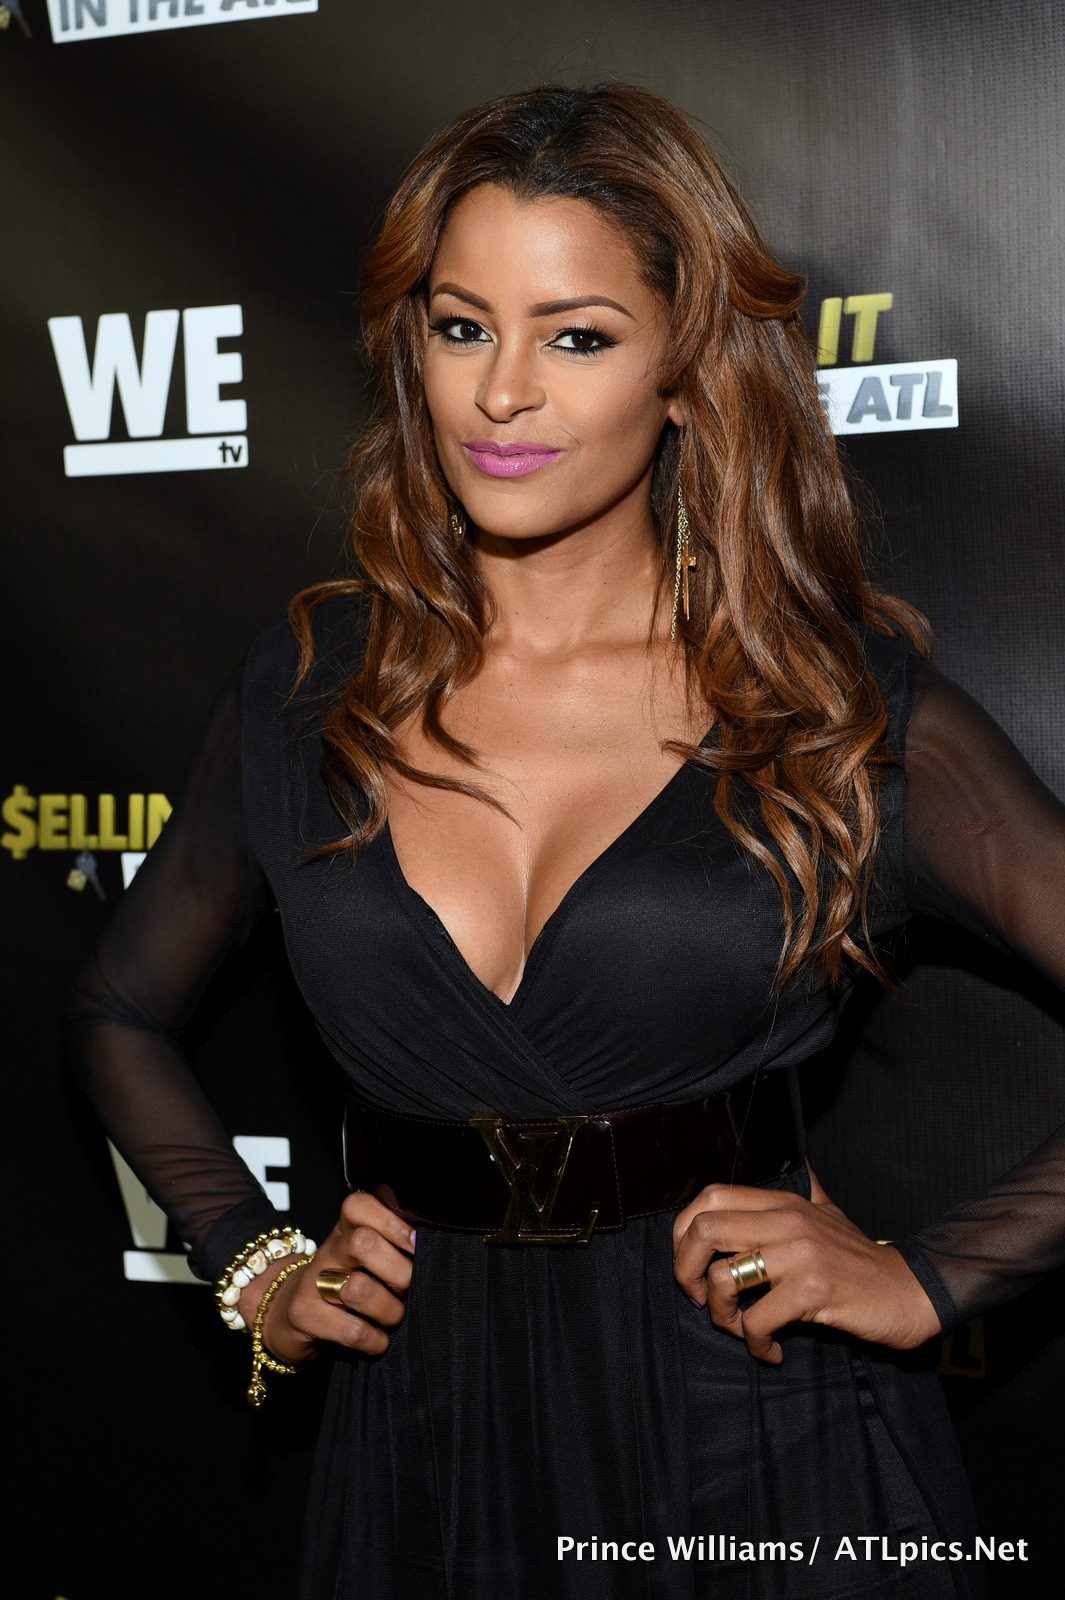 New Reality Show: Tv One's 'The Next 15' Starring Claudia Jordan